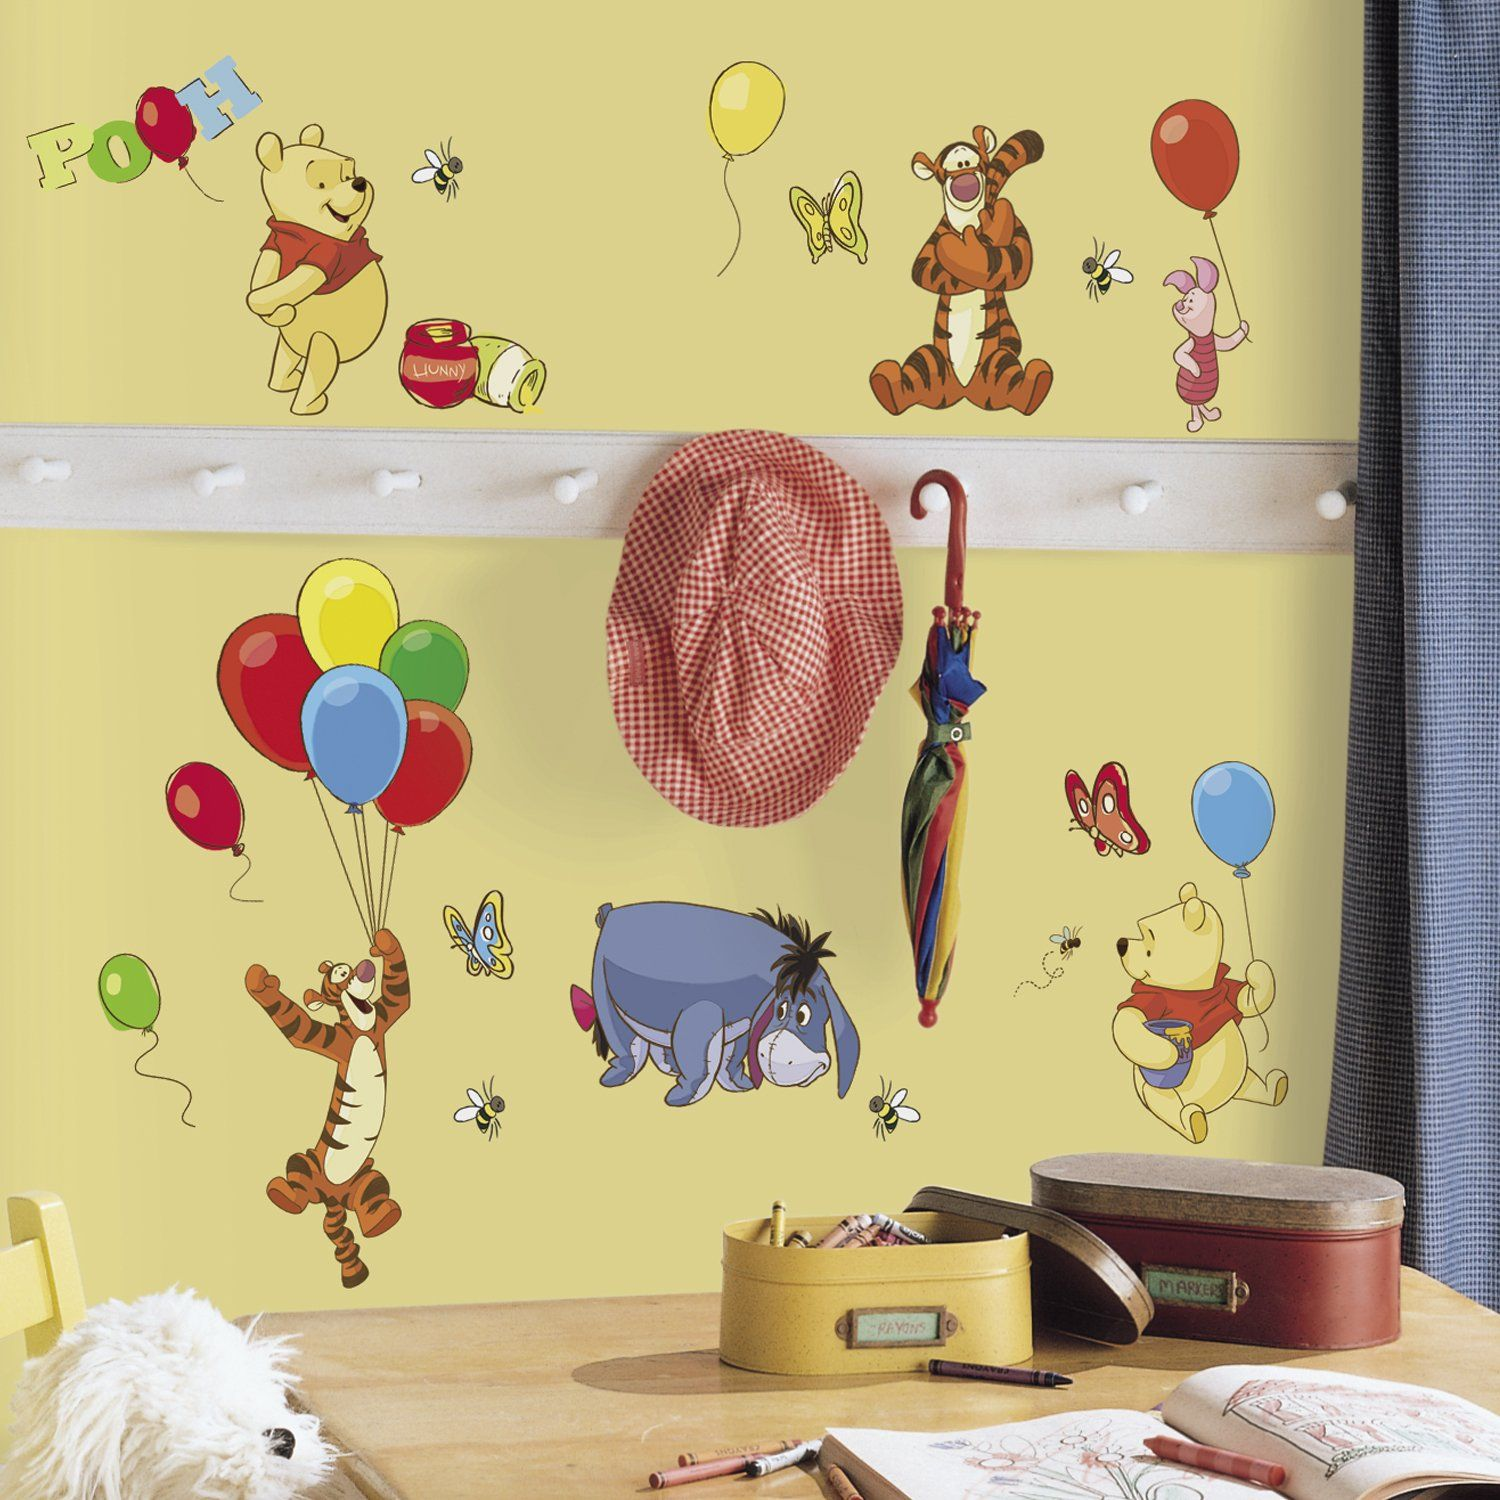 SALE!! Pooh And Friends Peel & Stick Wall Decals | Baby and Kids ...